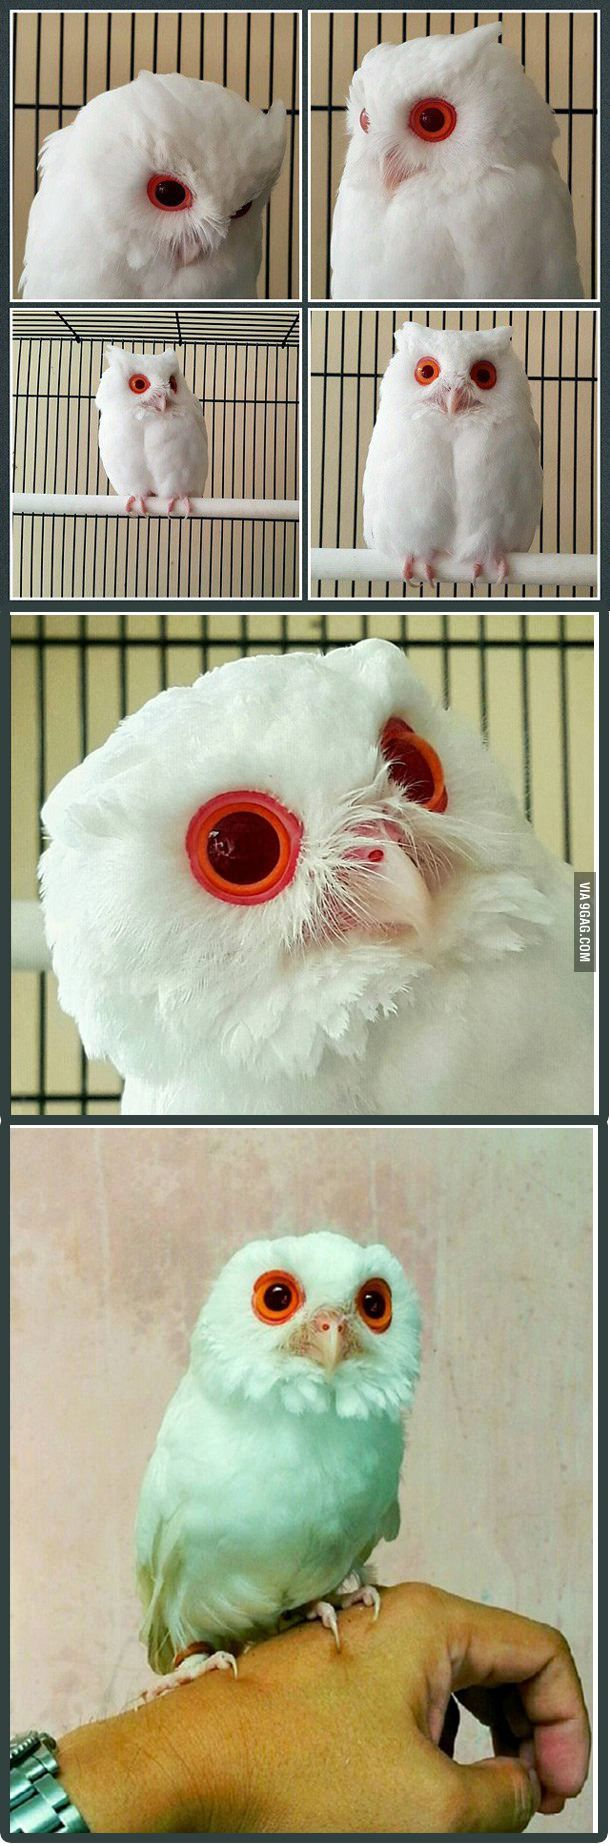 Owl albino with red eyes. - 9GAG